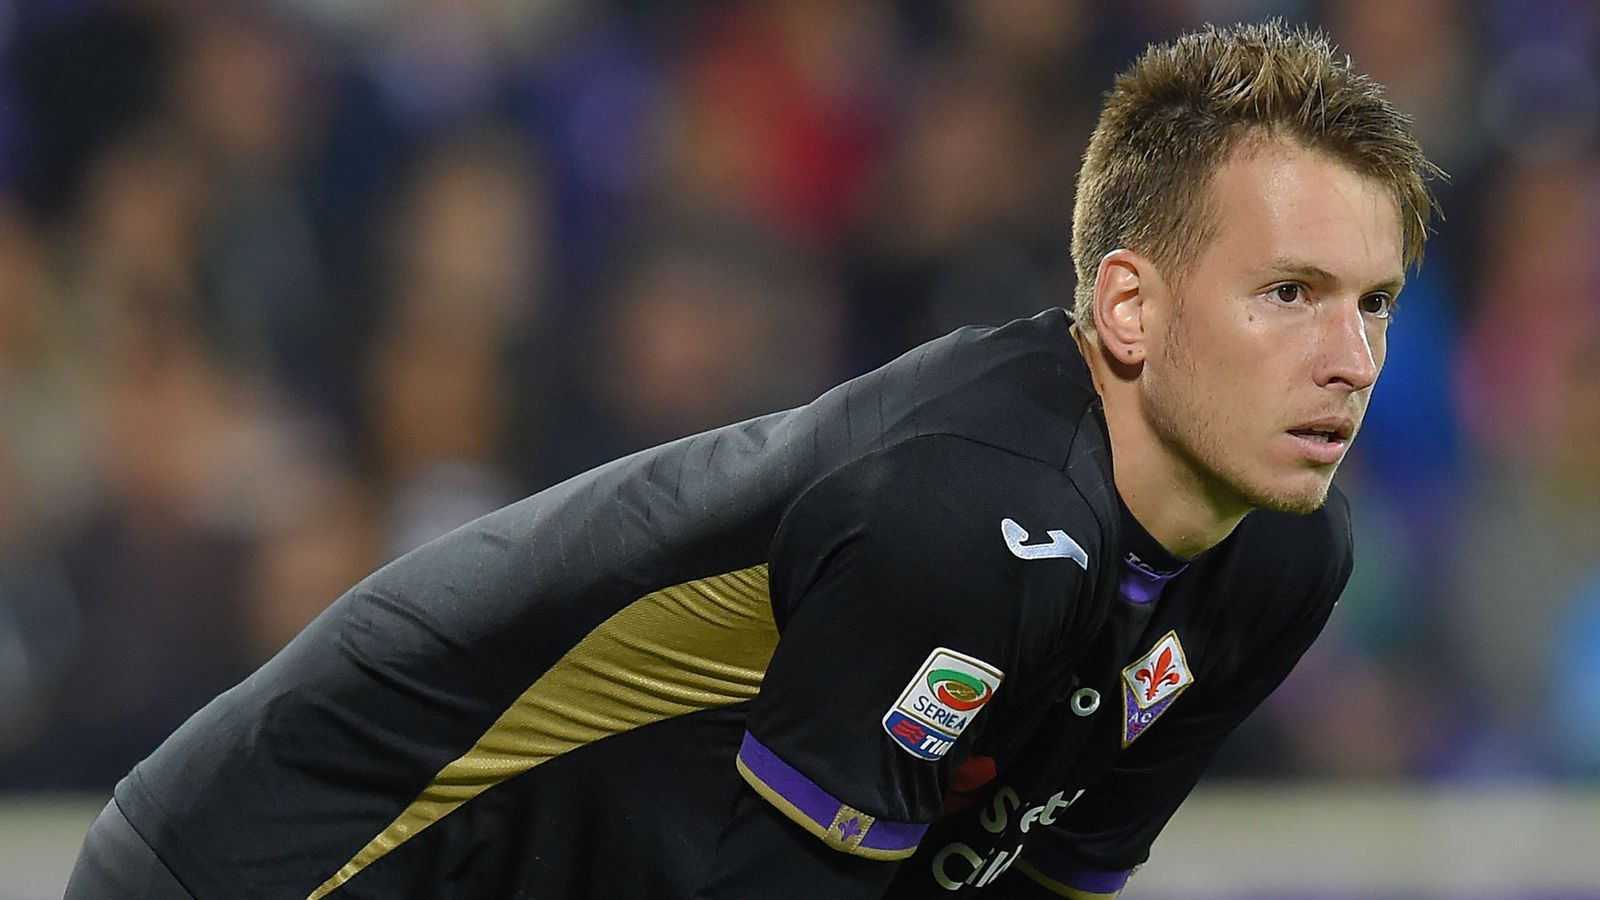 vans alomar - Report: Juventus agree to terms with Fiorentina goalkeeper Neto ...